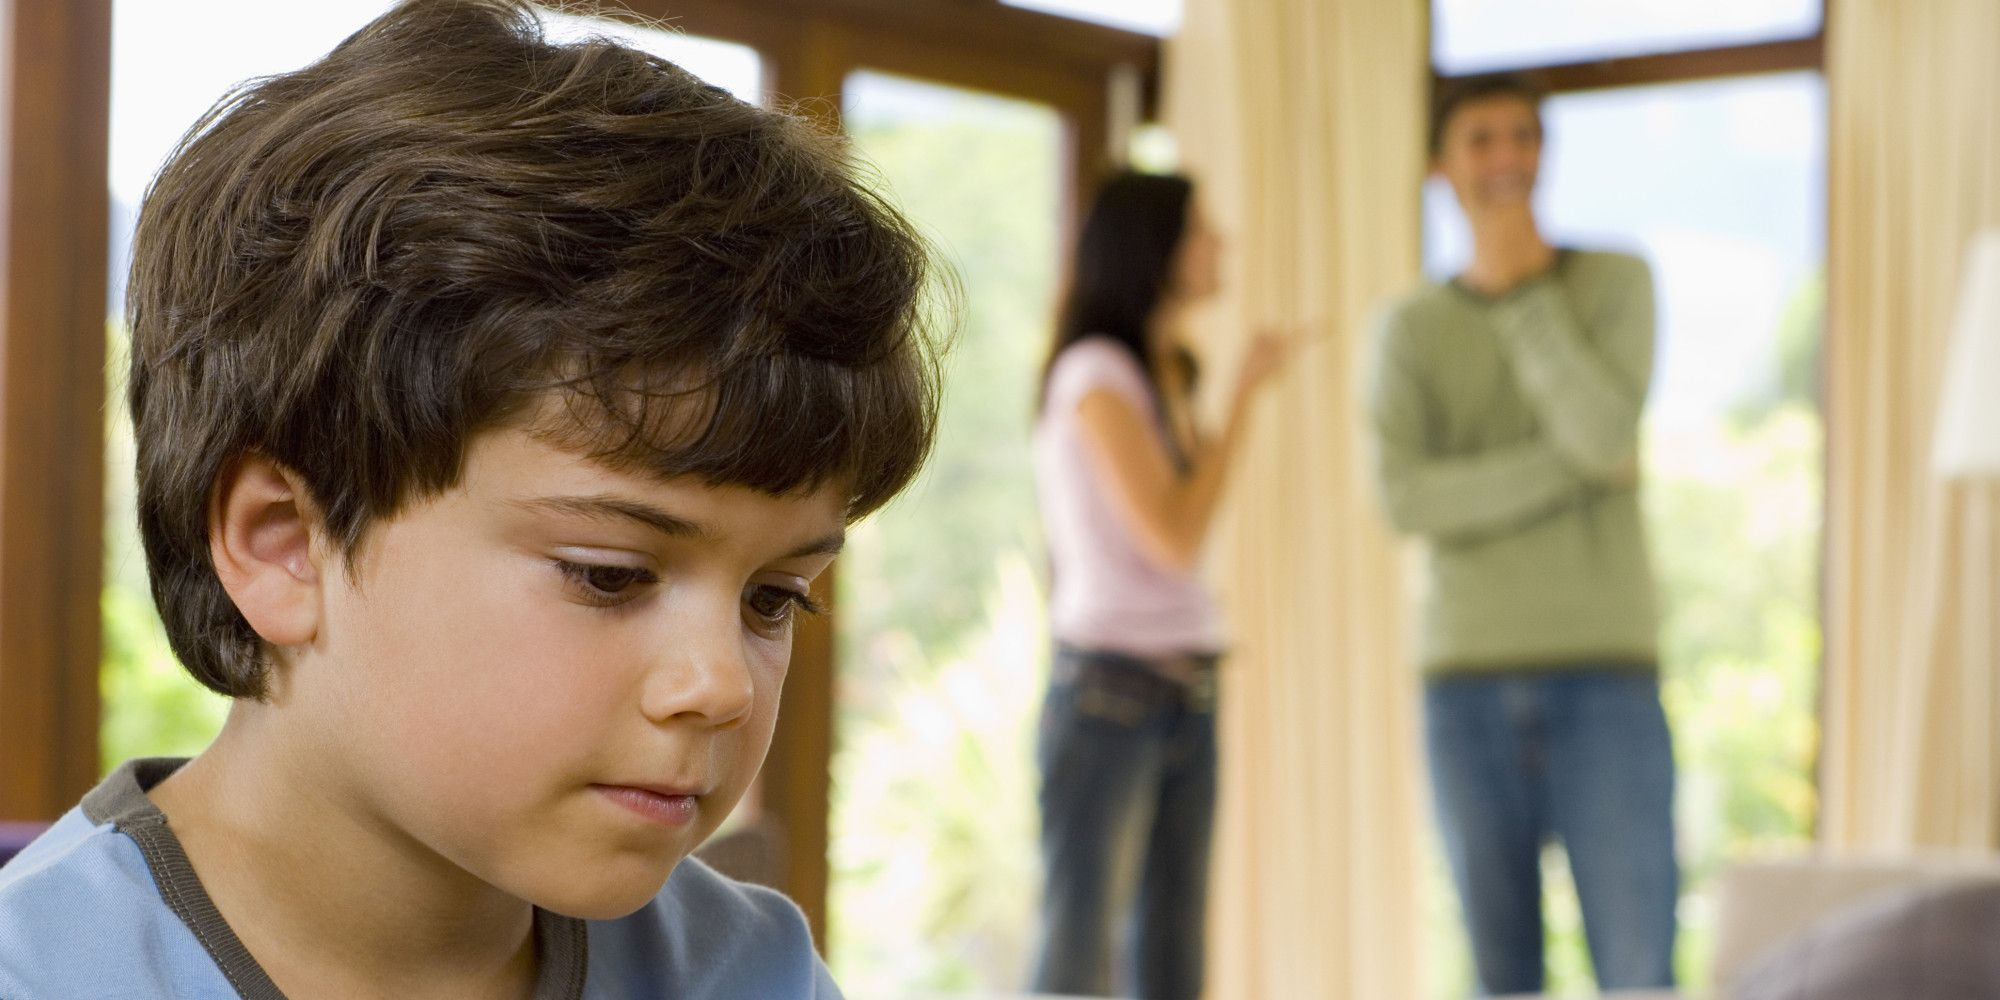 7 Ways Divorce Affects Kids According the Kids Themselves